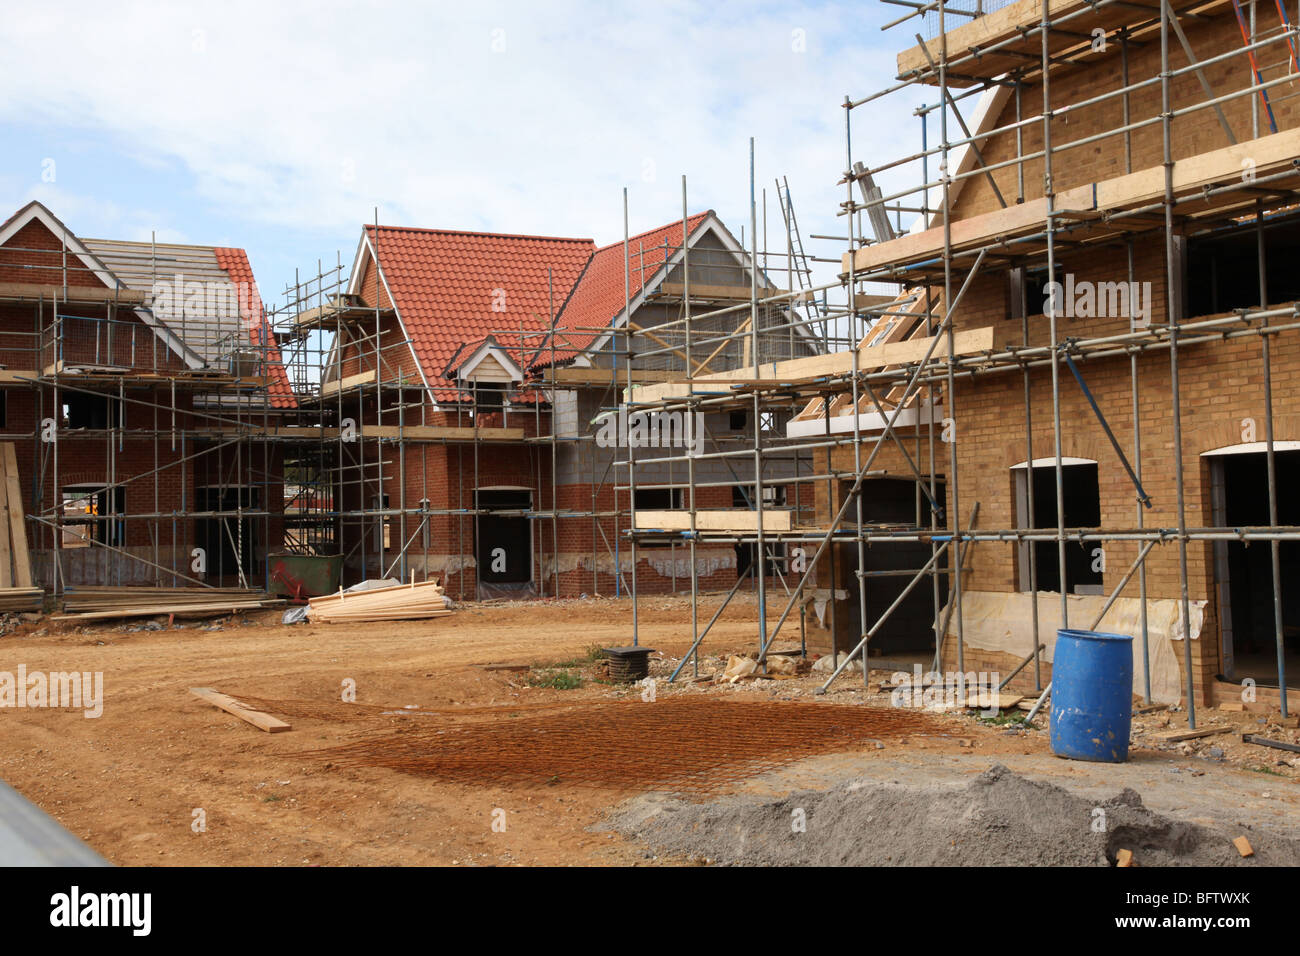 New houses under constuction on a building site - Stock Image